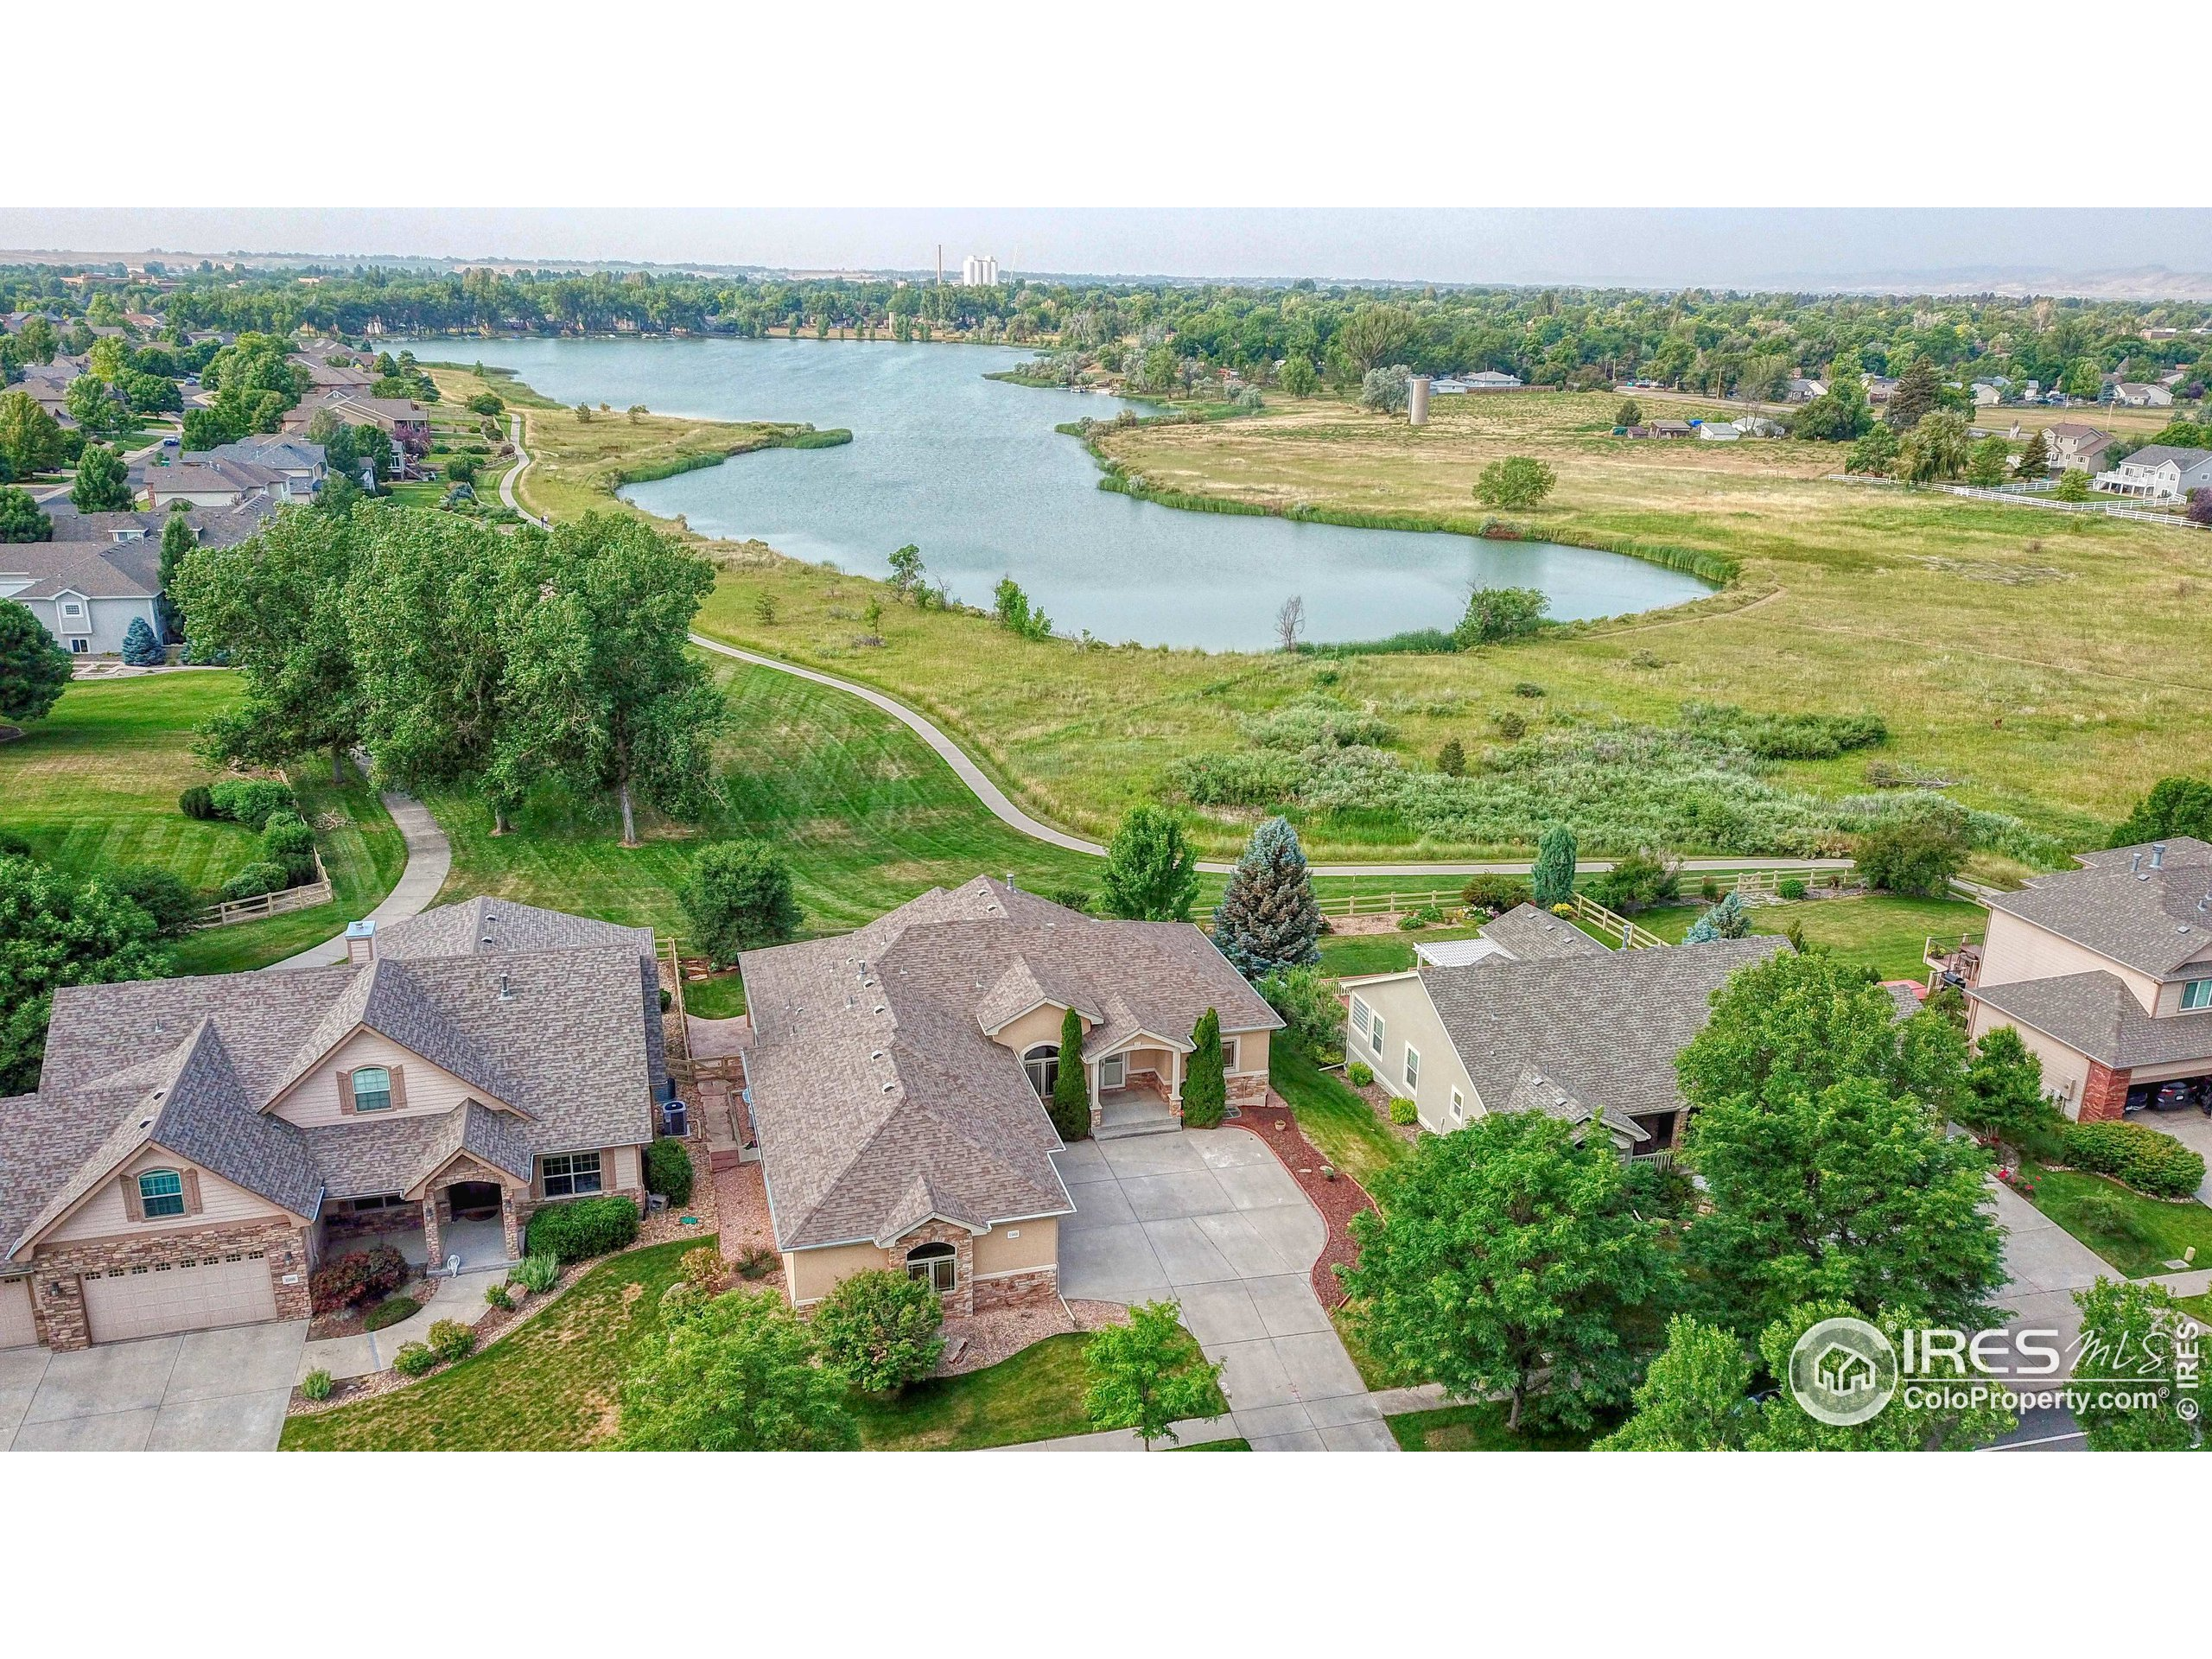 Great Opportunity to enjoy Mountain and Lake Views right here in Northern Colorado! The Seven Lakes Neighborhood is a very desirable community backing to private open space and the non-motorized lake. Enjoy paddle boarding, kayaking and more! Great walking and biking trails! Spacious open floor plan ranch home a large 0.24 acre fenced lot with hickory floors, granite countertops, gas stove, double ovens, 3 sided fireplace, dining room/study and amazing views! Immense oversized garage with so much storage! Daylight basement and an amazing theatre room, as well as a huge rec room.